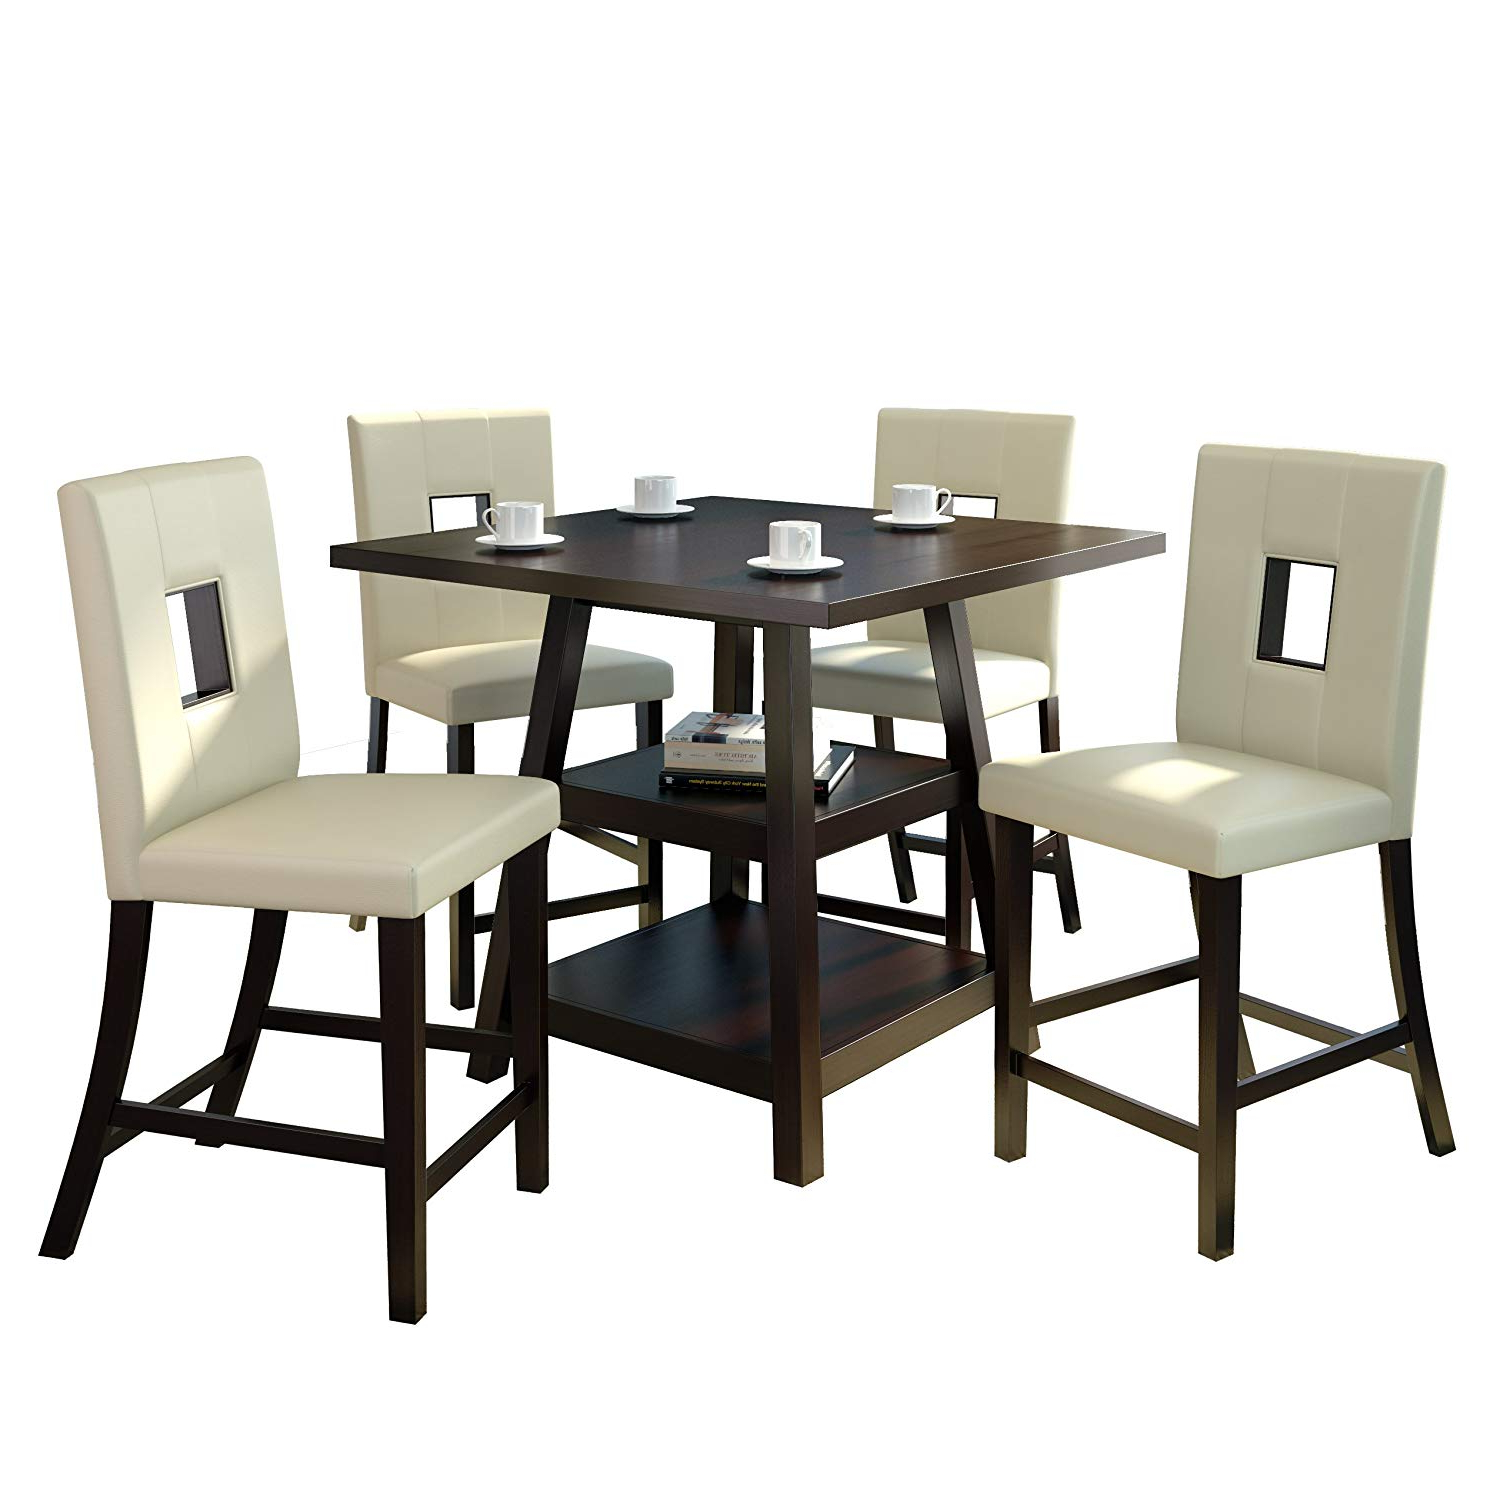 """Favorite Corliving Bistro Dining Set, 36"""", Cappuccino/white Pertaining To Bistro Transitional 4 Seating Square Dining Tables (View 3 of 24)"""